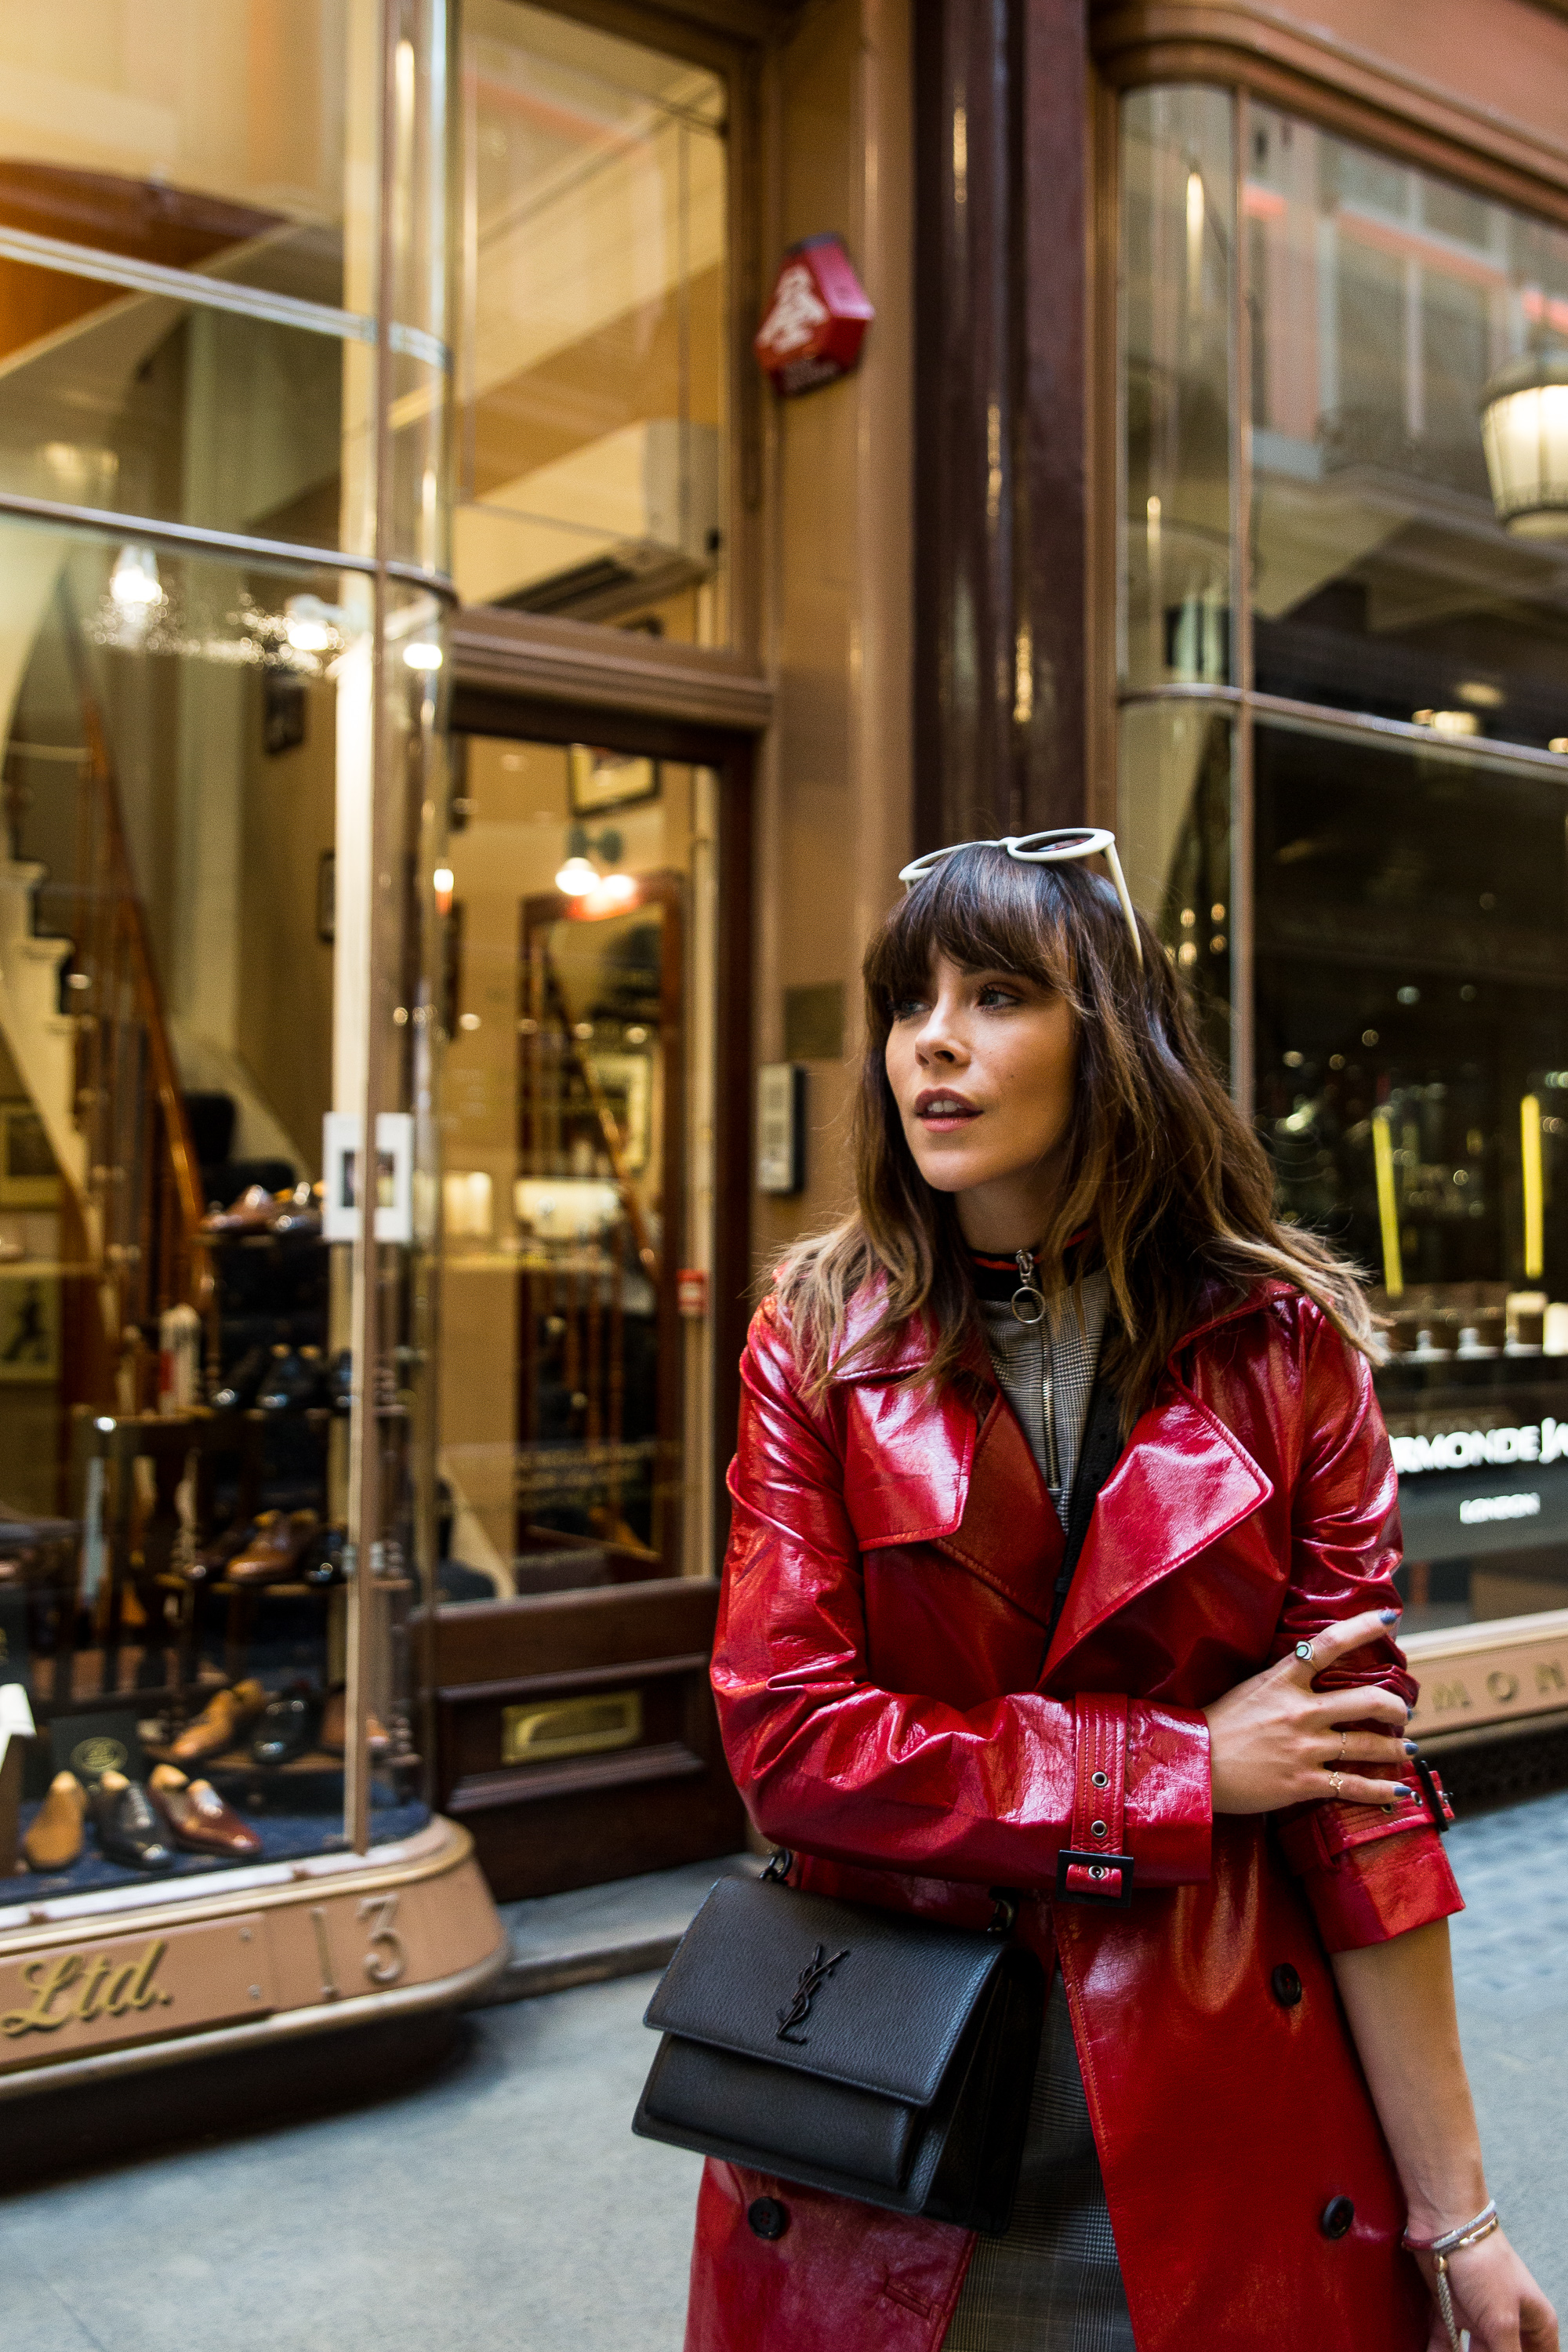 MEGAN ELLABY HOW TO WEAR A PVC TRENCH COAT